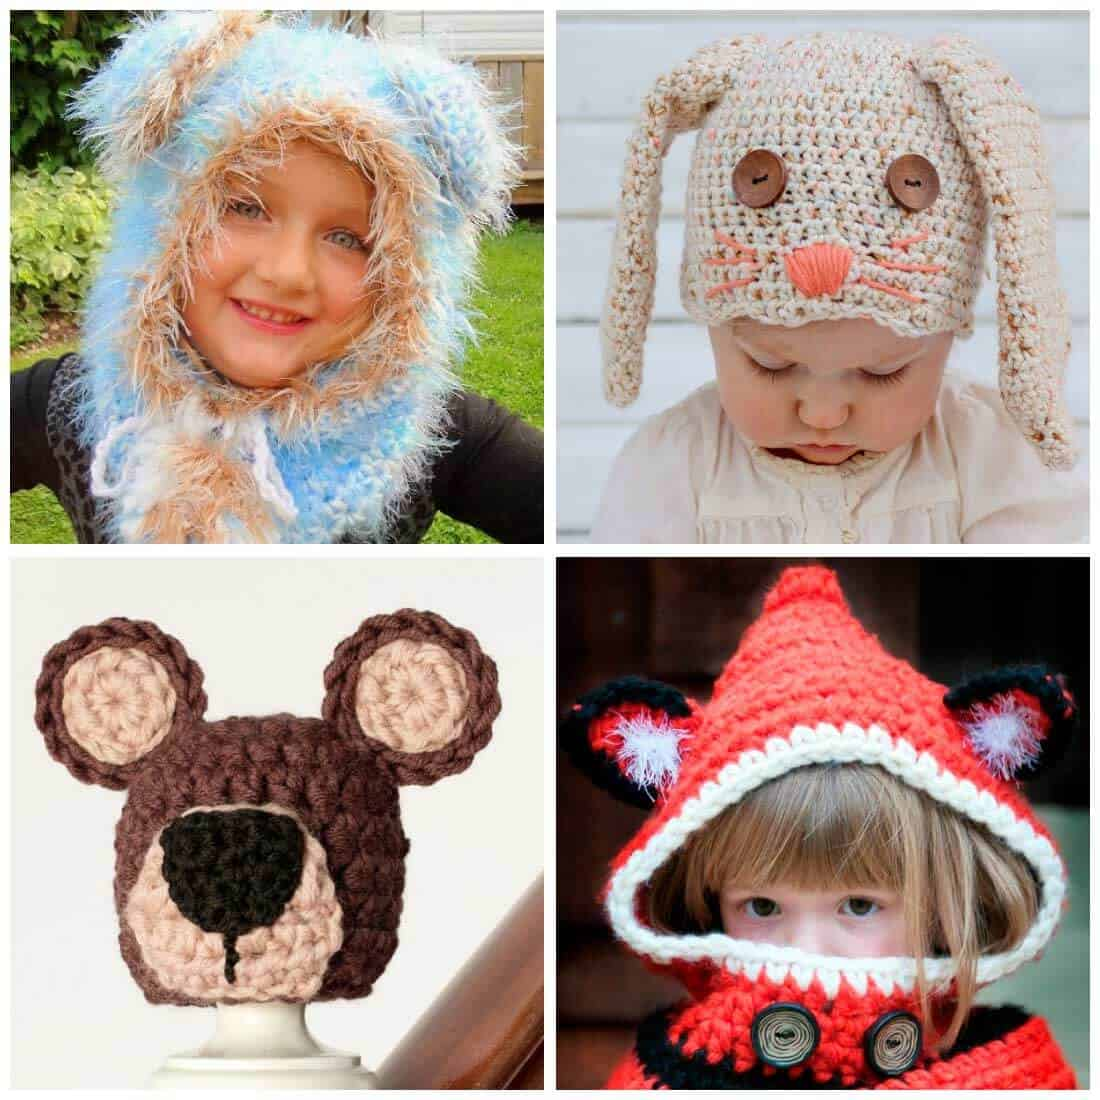 Crochet Hat Patterns for Kids - Daisy Cottage Designs f6d6c3bb79b